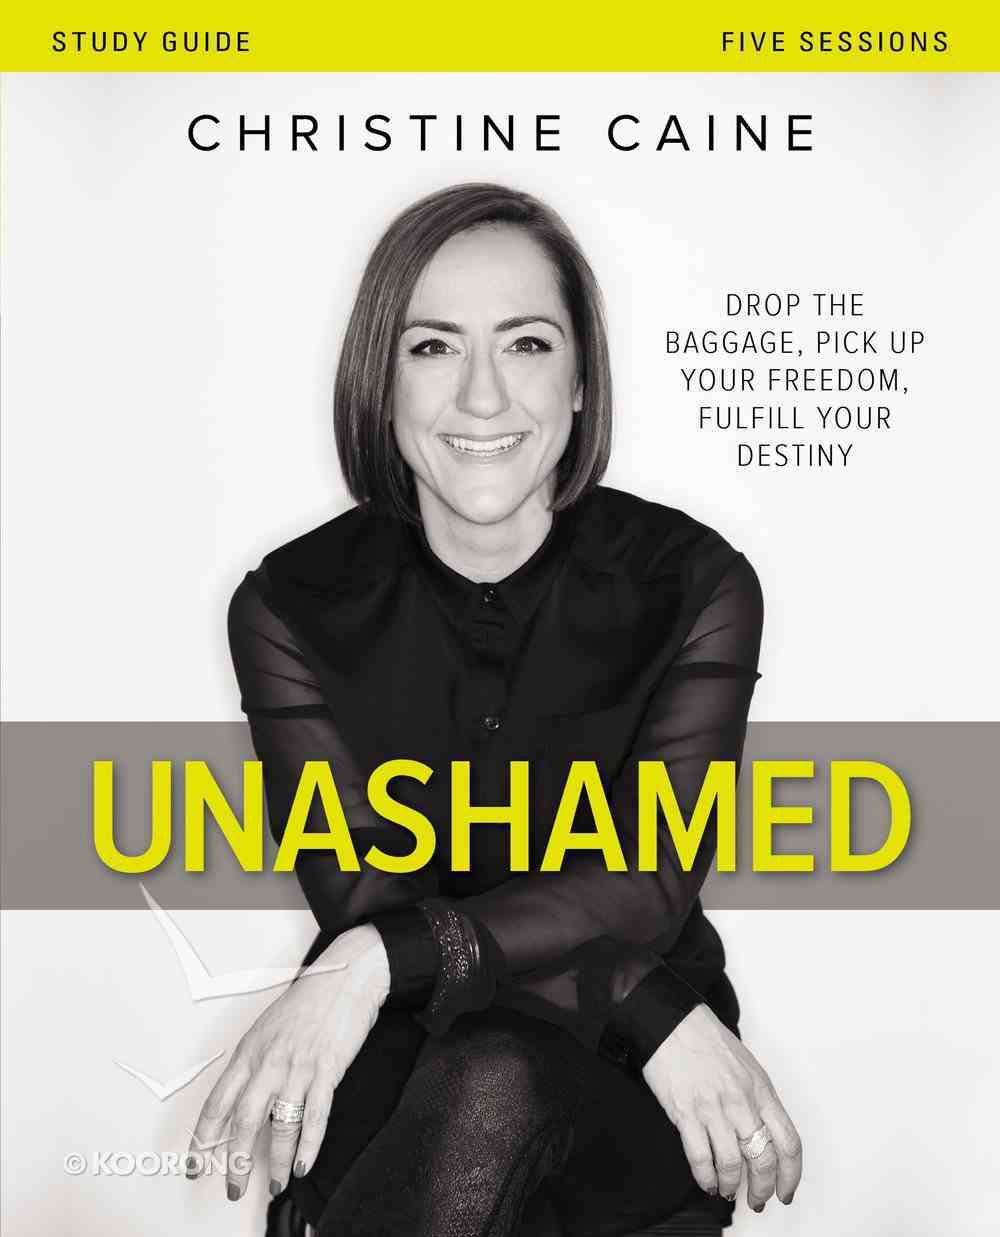 Unashamed: Drop the Baggage, Pick Up Your Freedom, Fulfill Your Destiny (Study Guide) Paperback